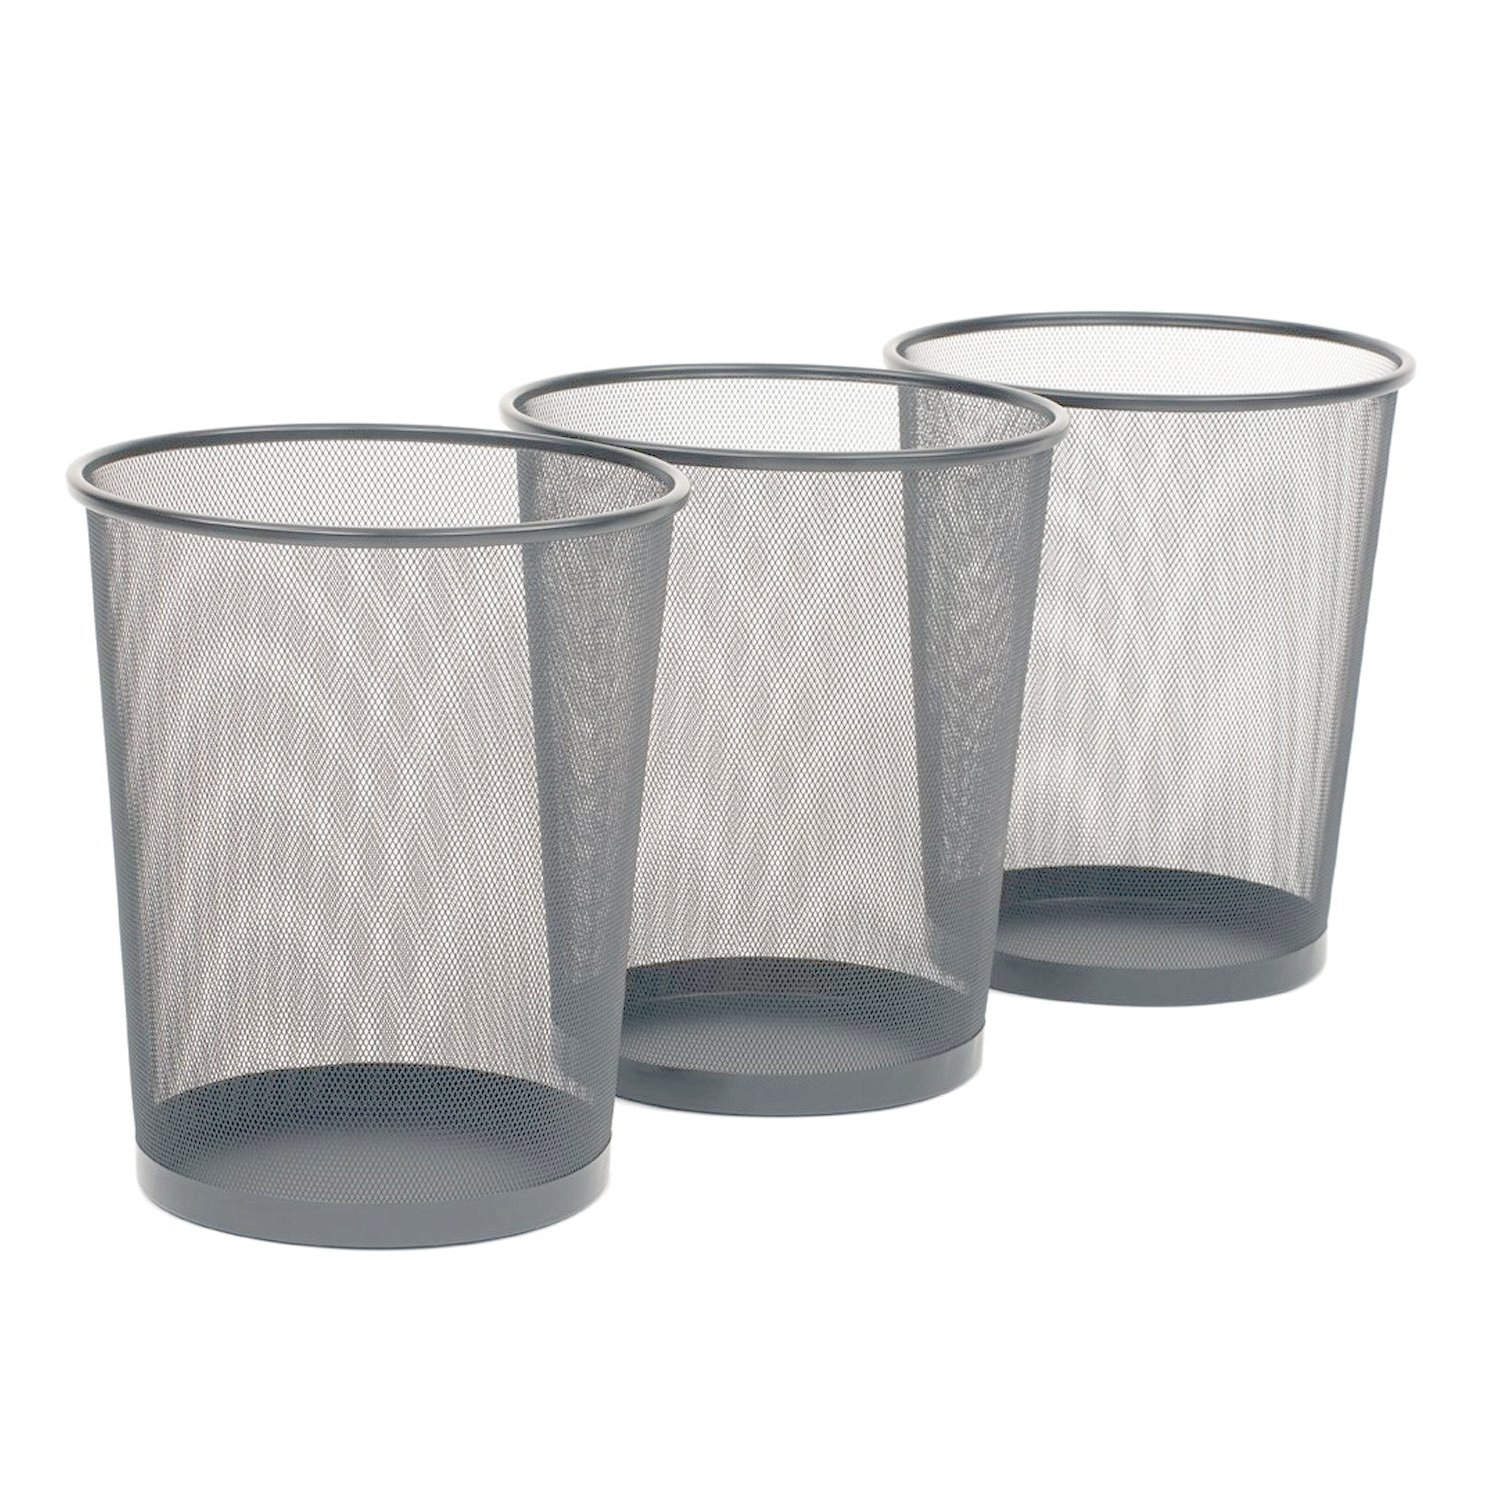 Seville Classics 3-Pack Round Mesh Wastebasket Recycling Bin, 6 Gal, 12'' Diameter Top x 14'' H, Silver by Seville Classics